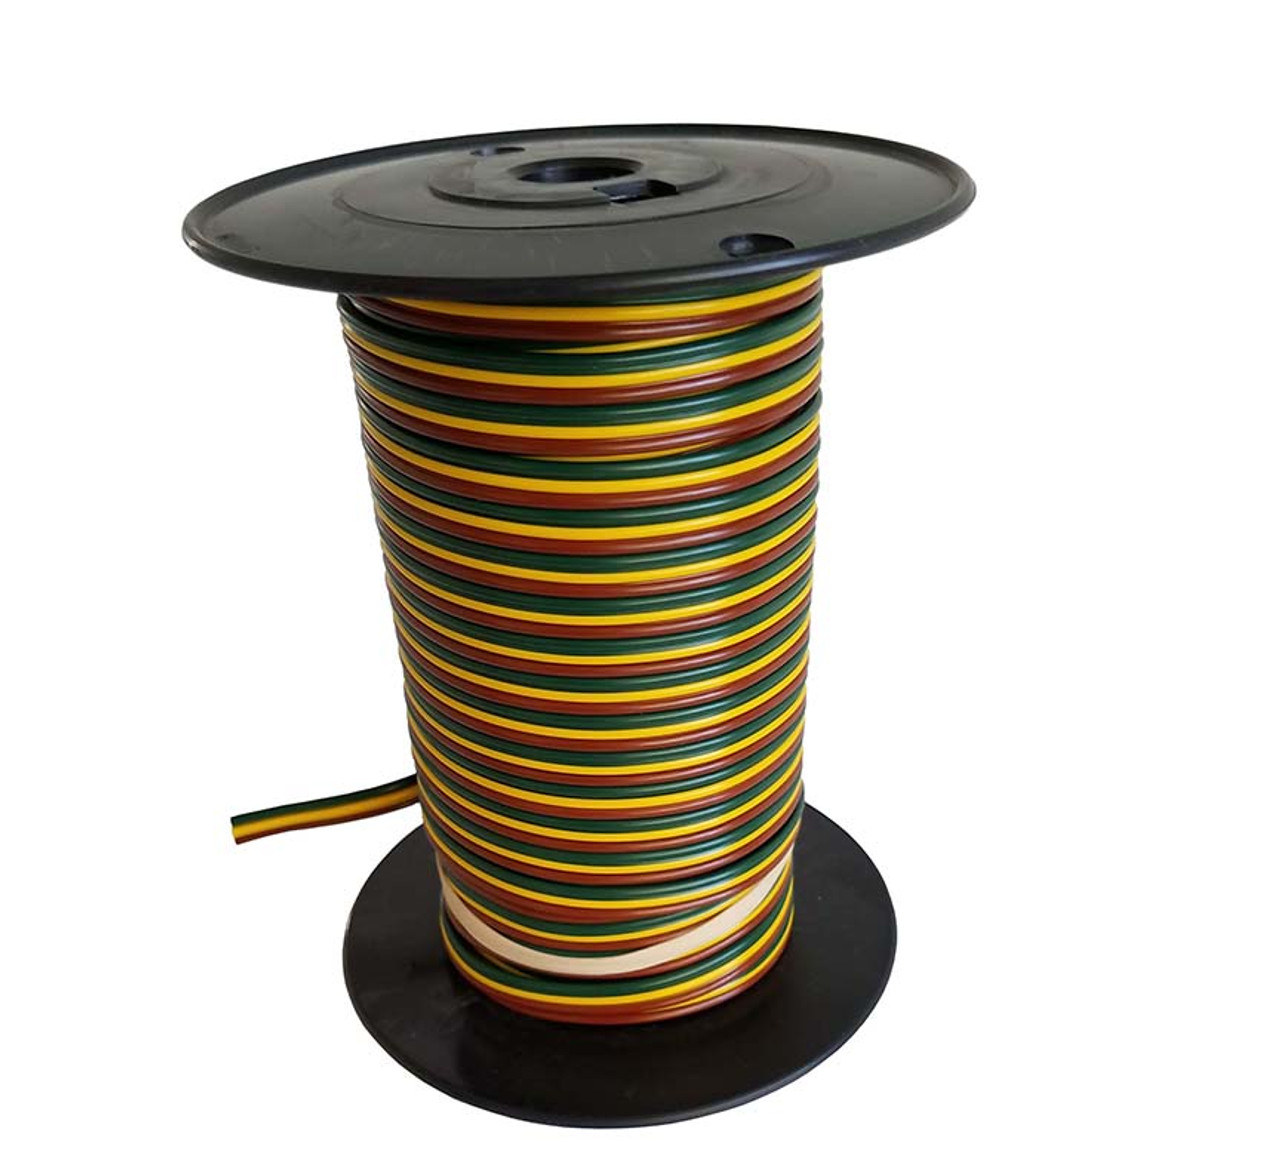 P3181 --- Parallel Trailer Cable, 3 Wire, 18 Gauge